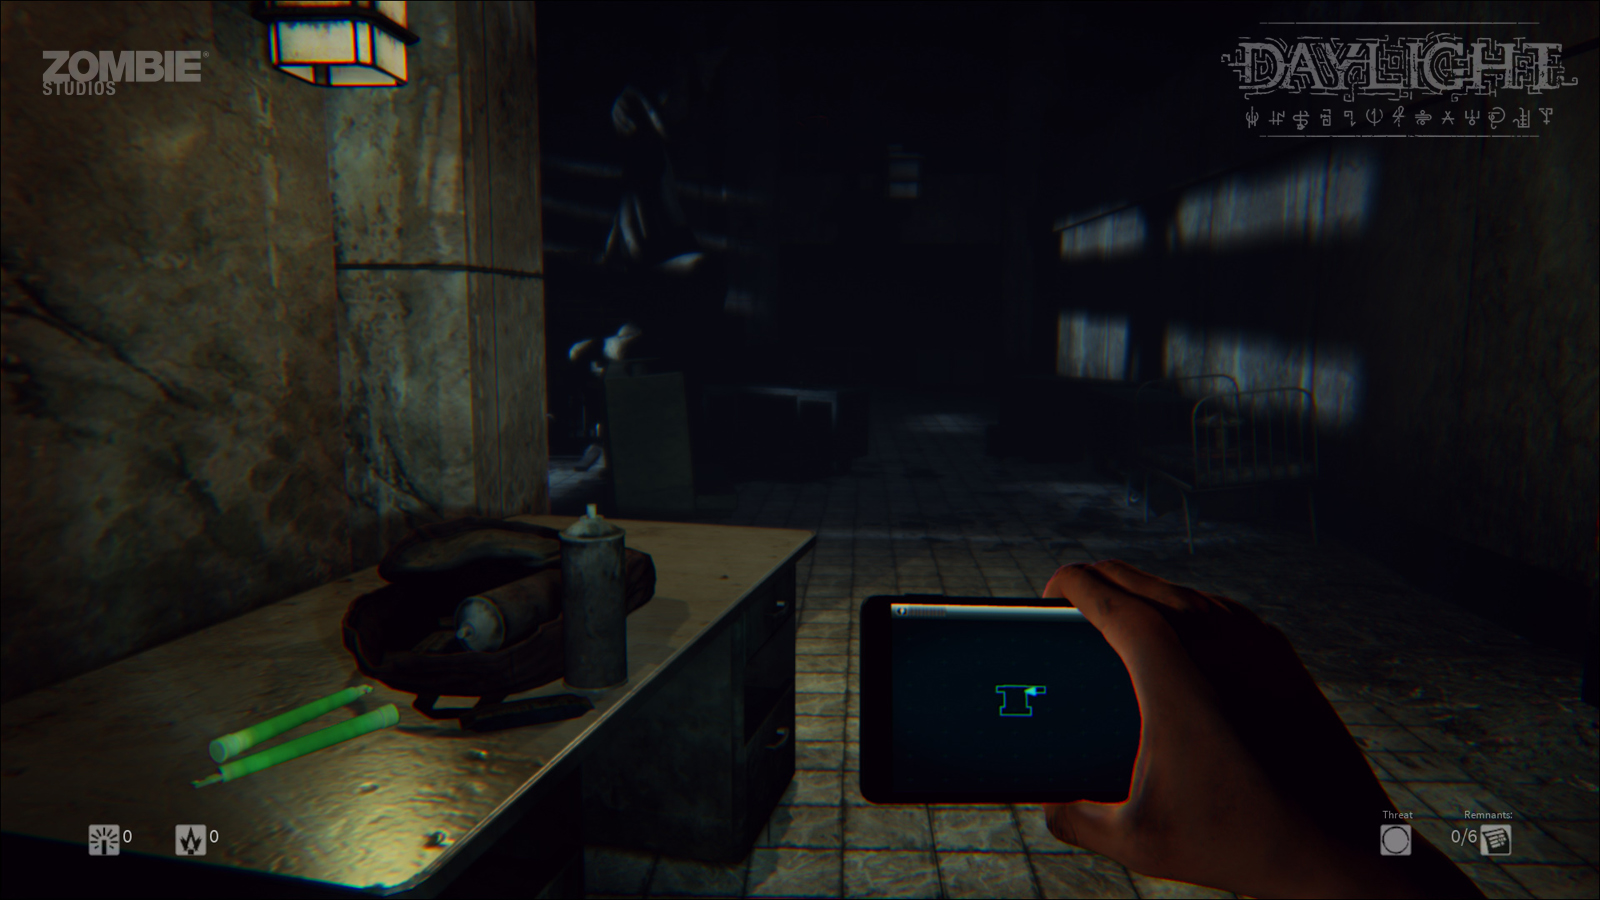 Daylight (PS4) – who'd have thought being scared could be so boring